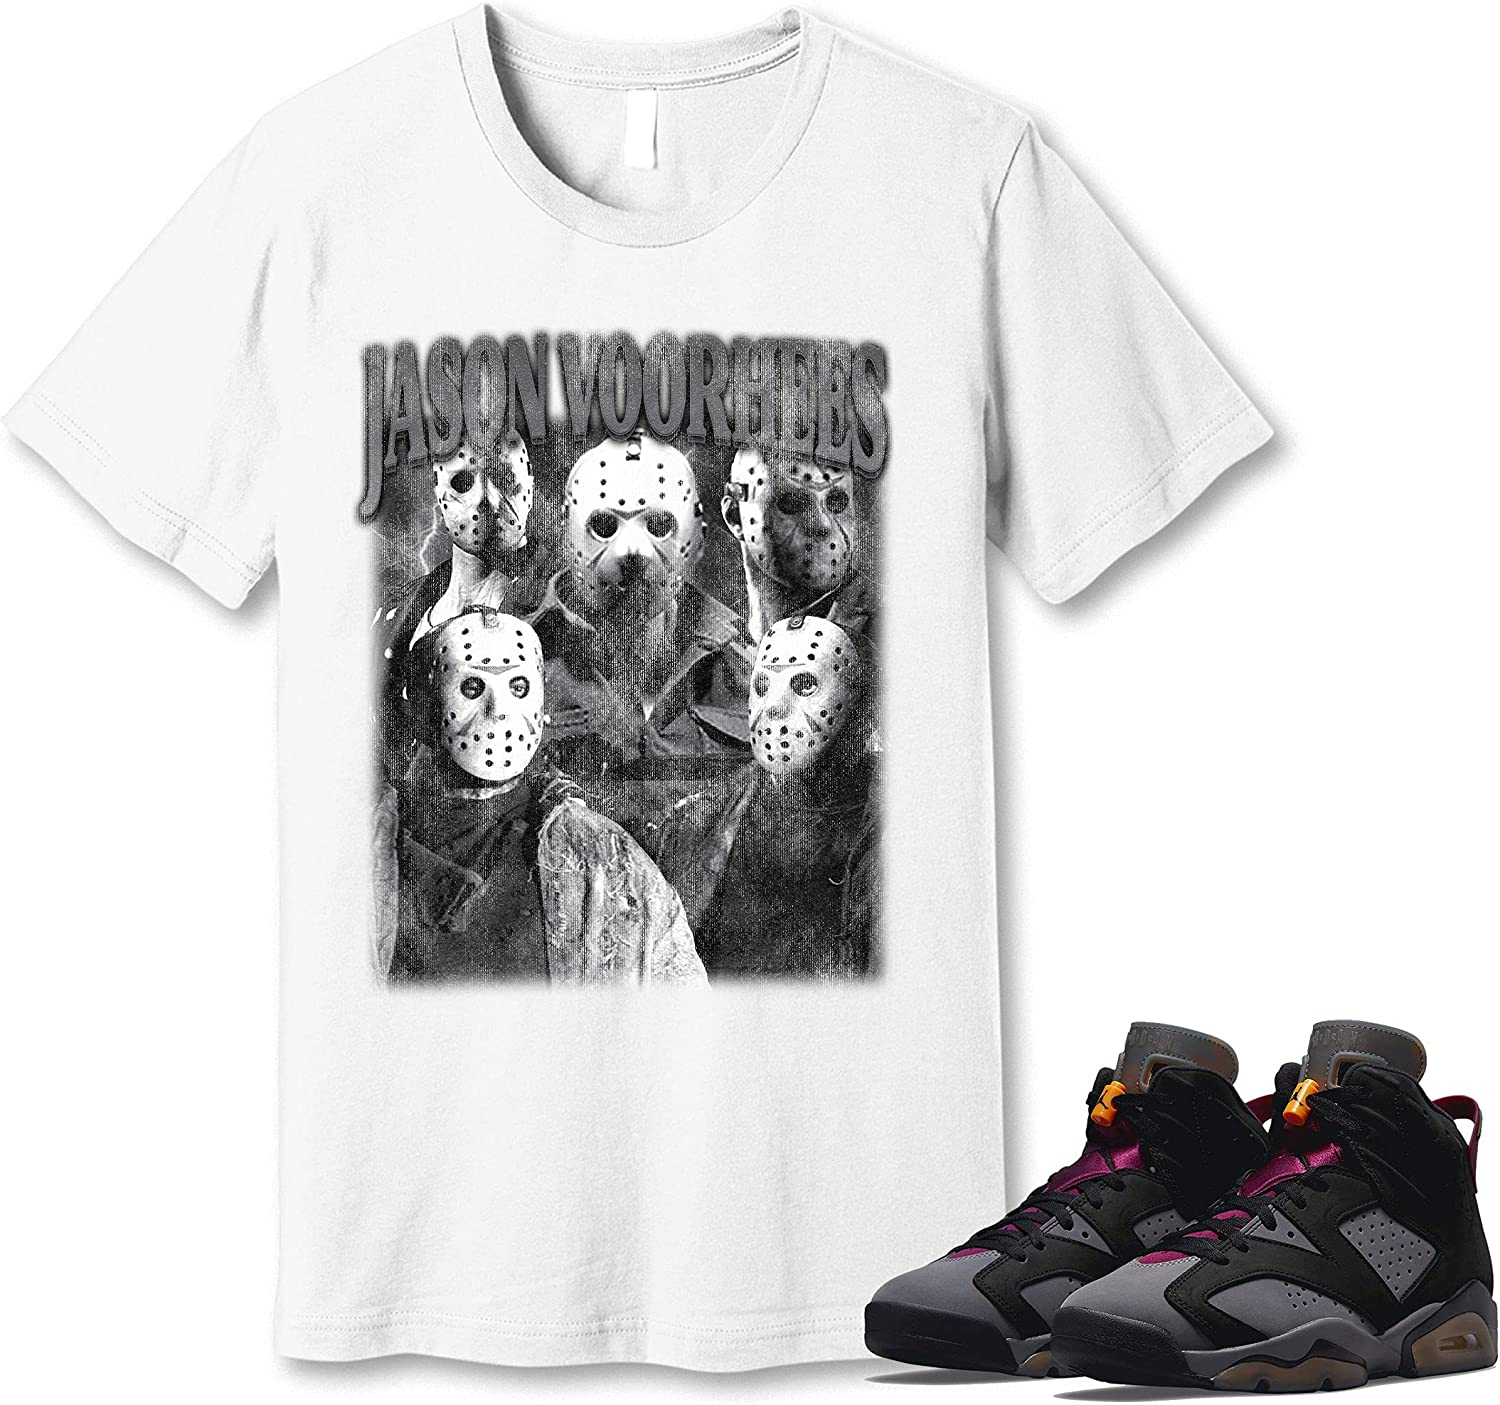 #Jason #Voorhees T-Shirt to Match Sneaker Bordeaux Genuine Free Shipping Max 78% OFF Snkr 6 Jordan